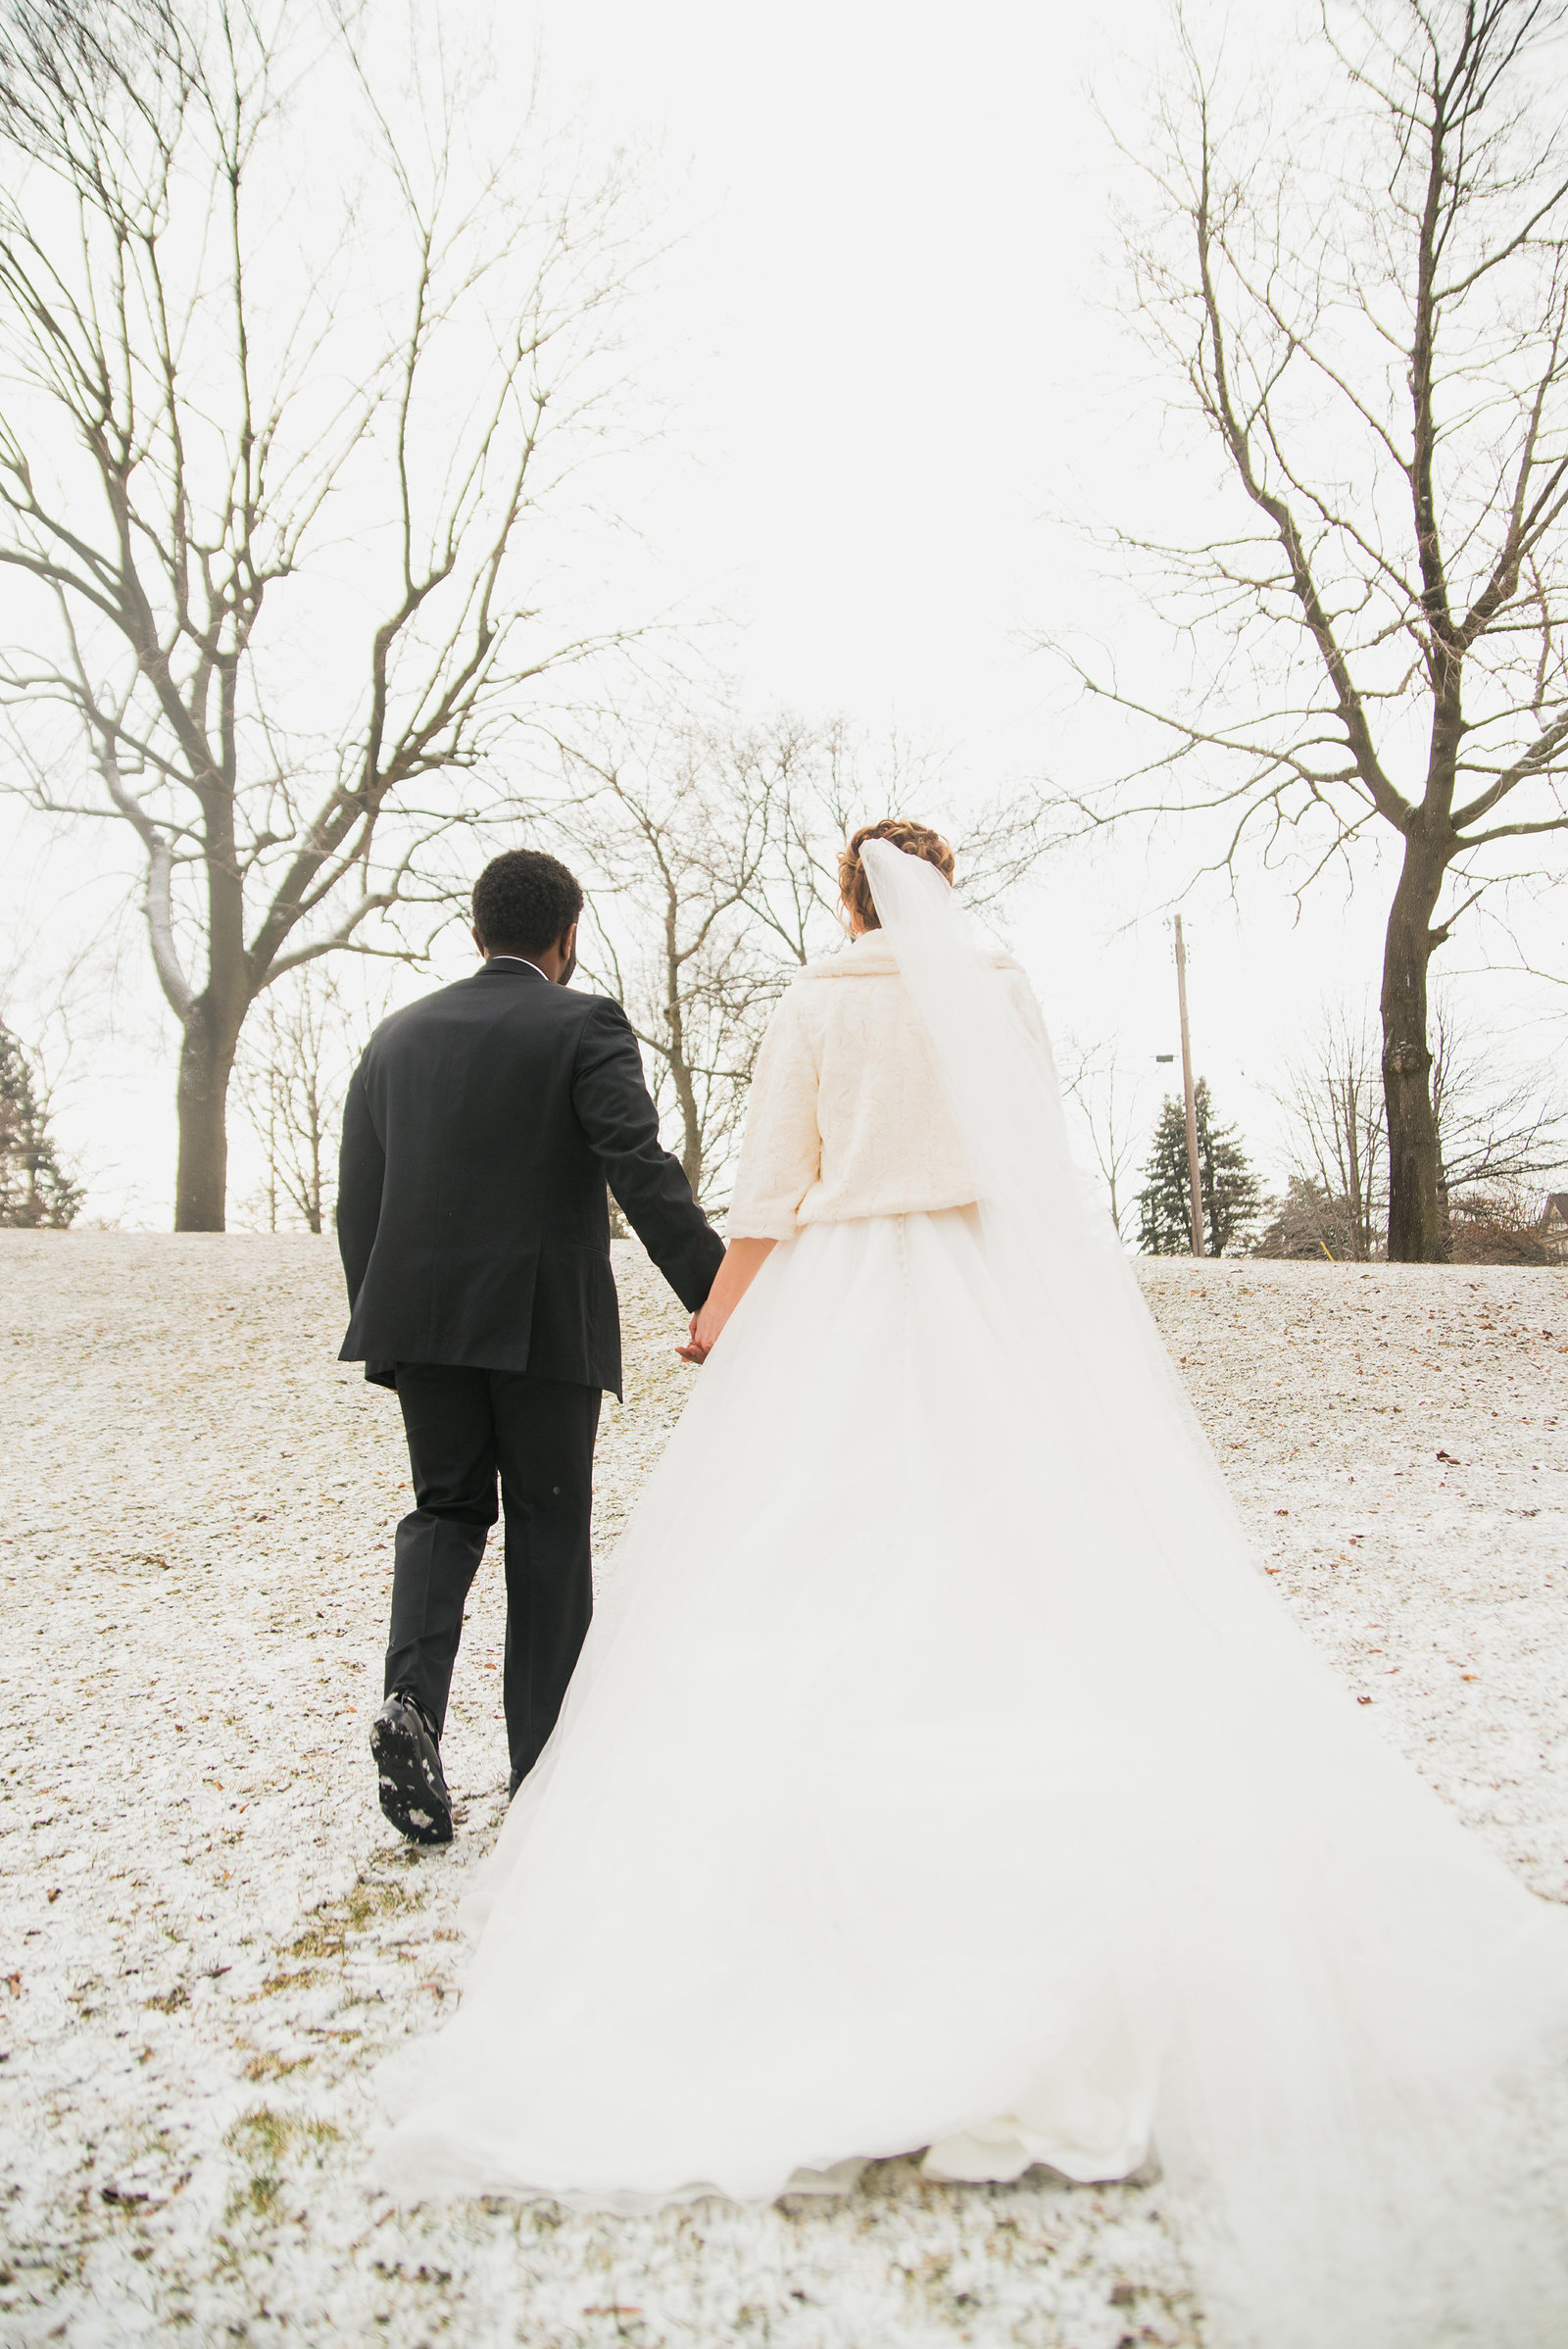 Running_Deer_Winter_Wedding113